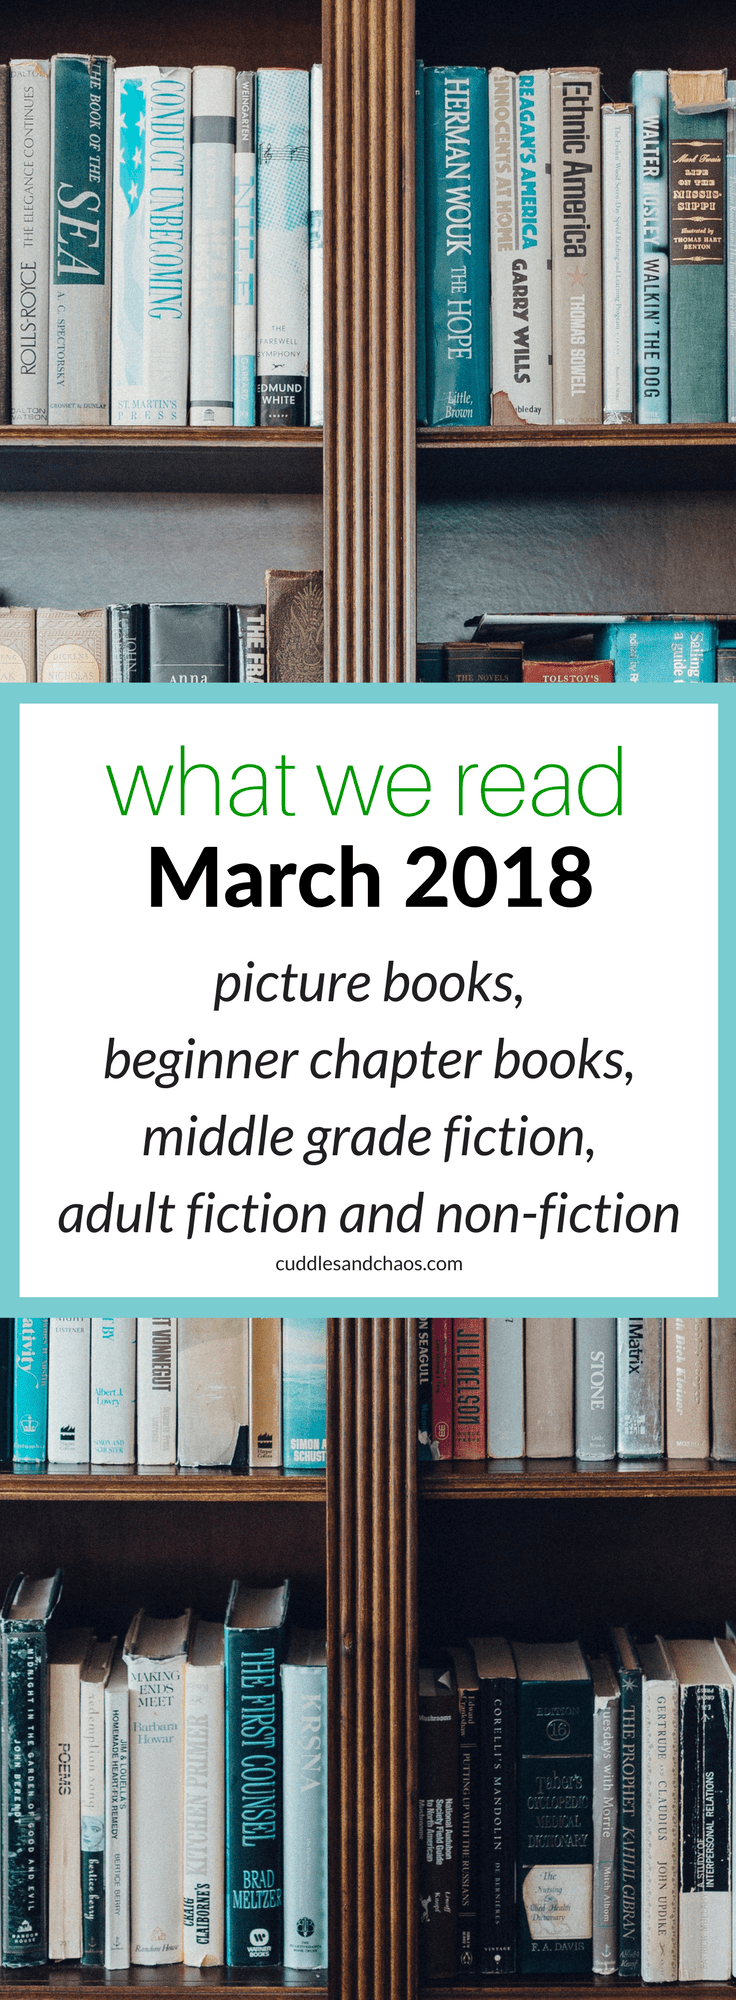 what we read March 2018 - picture books, beginner chapter books, middle grade fiction, adult fiction and non-fiction - #bookstoread